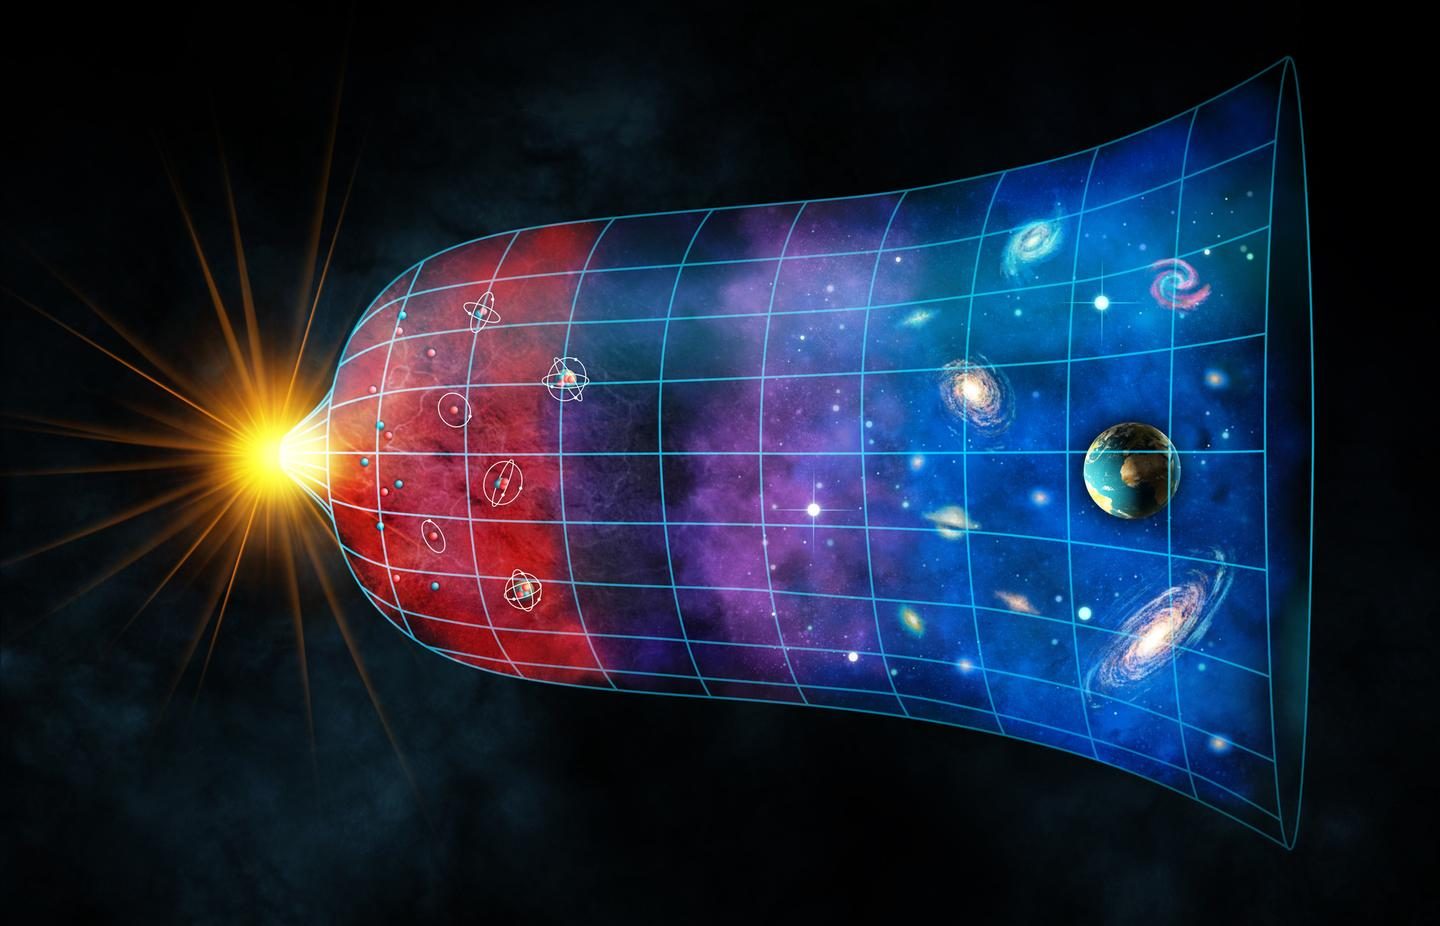 Dark energy is the mysterious force thought to be responsible for driving the expansion of the universe to accelerate – and now physicists suggest we may have detected it